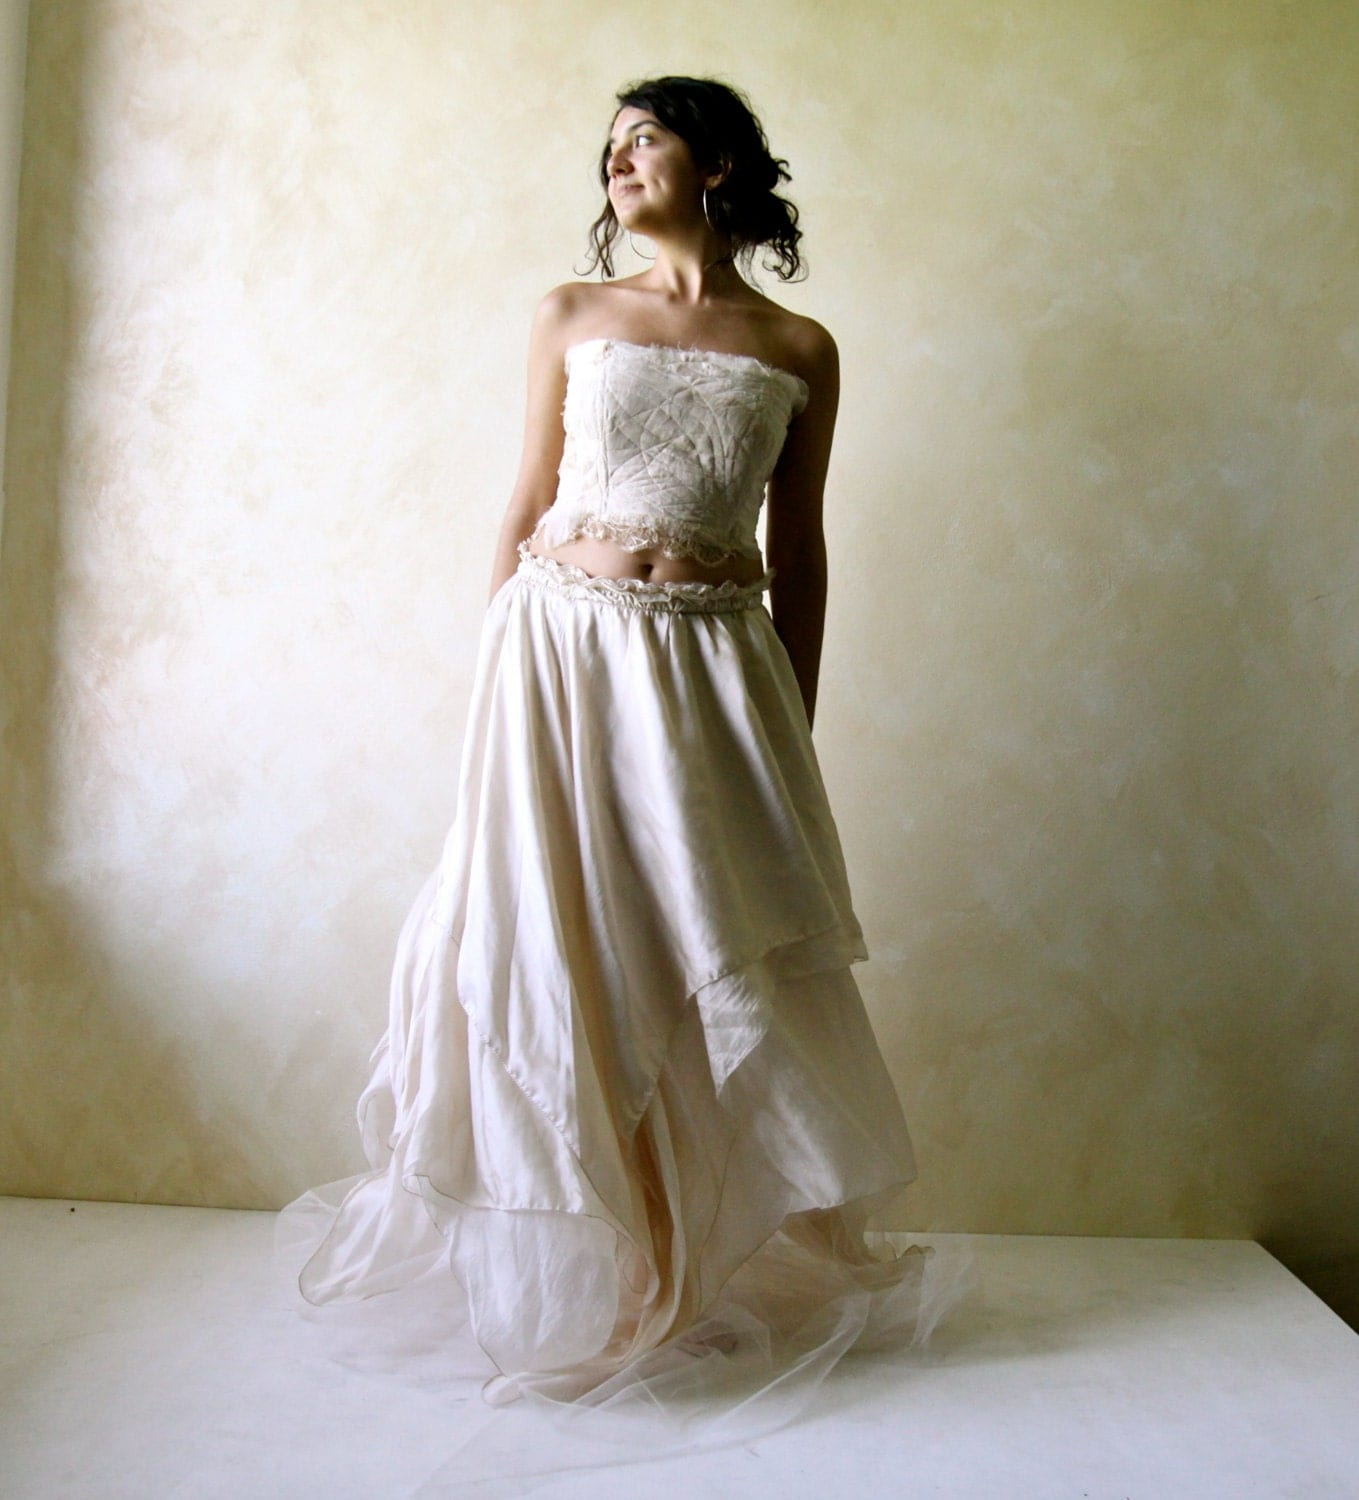 Boho Wedding Dress S Perth : Boho wedding dress fairy hippie